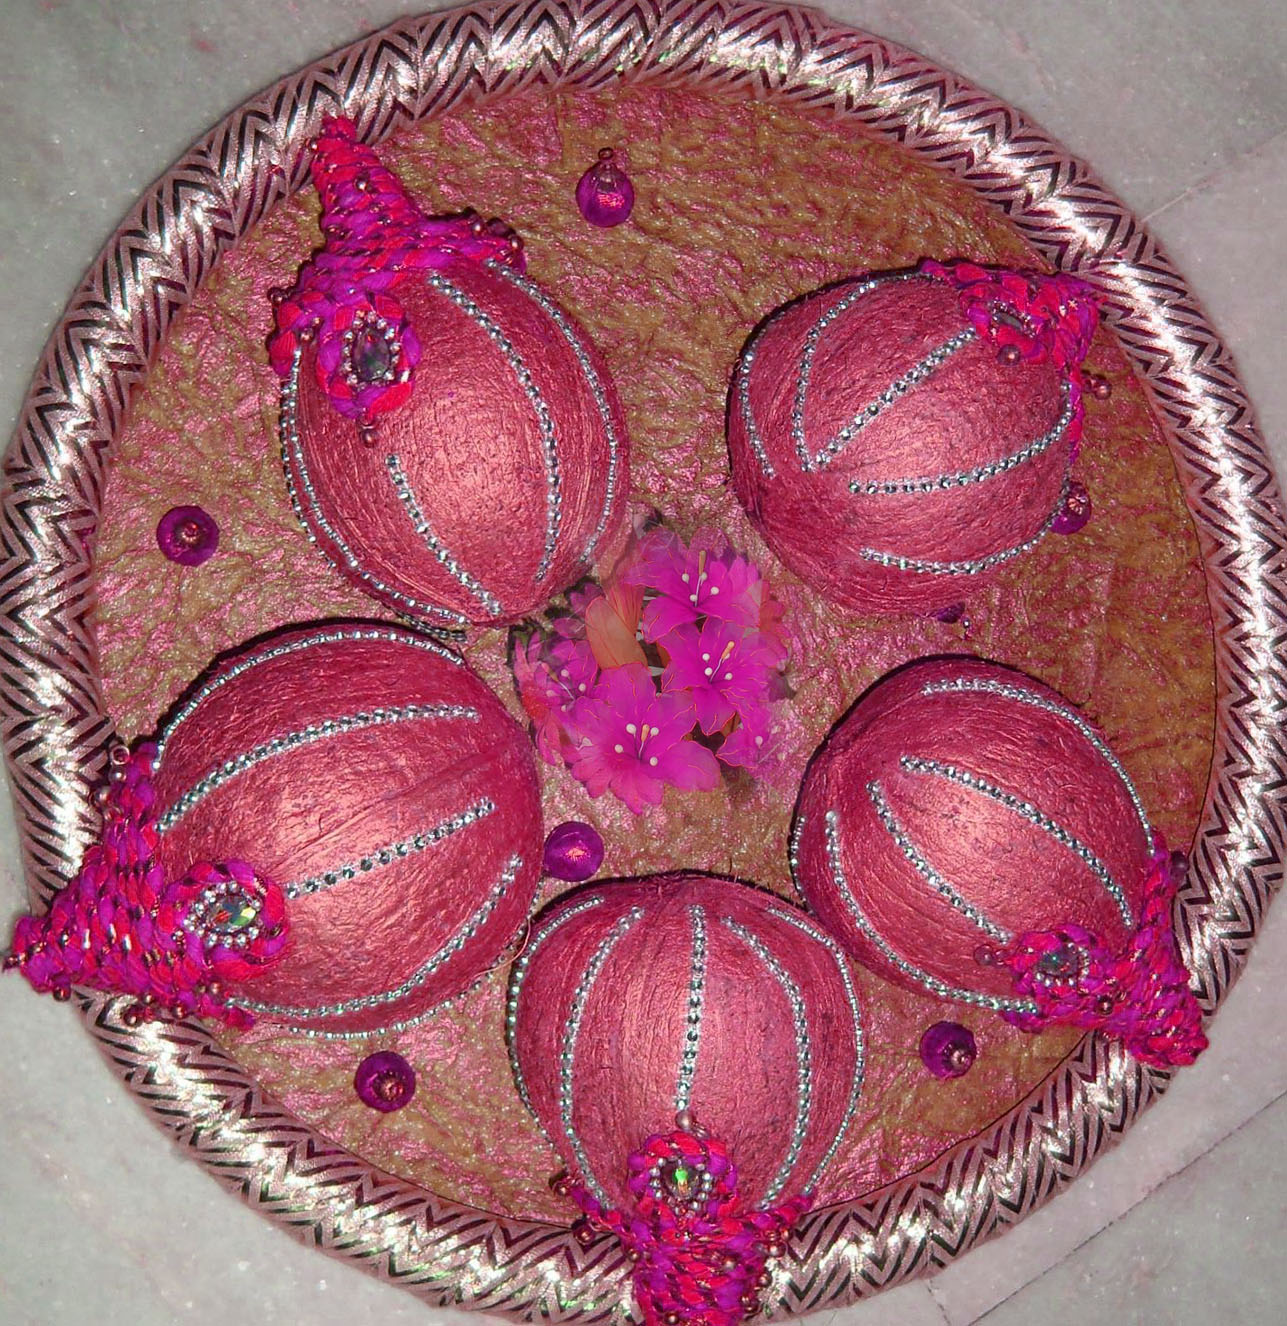 Kitchen decorative items online indiawall hangings decorative coconut decoration tray prices in india shopclues online junglespirit Gallery